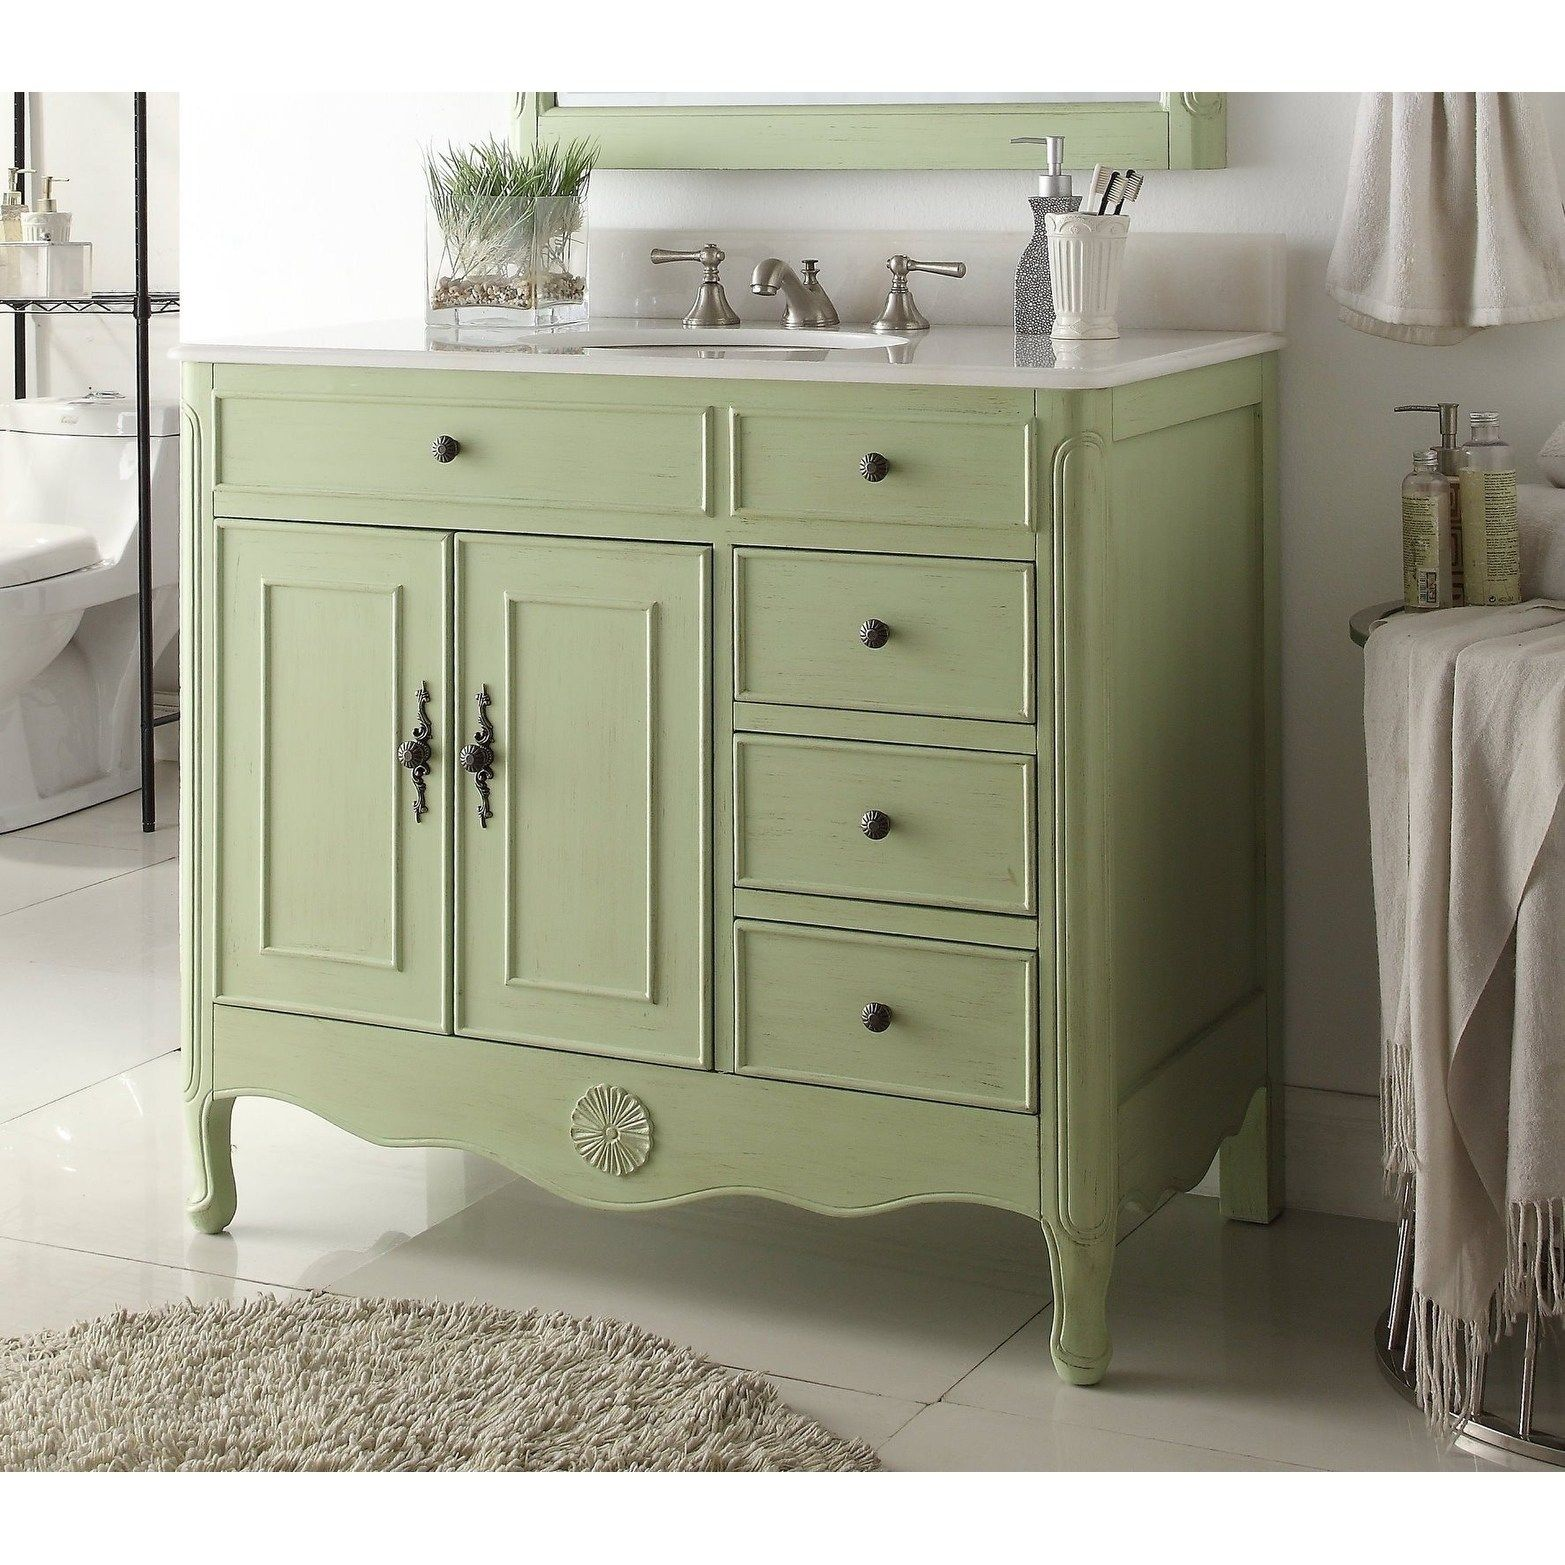 Online Shopping Bedding Furniture Electronics Jewelry Clothing More Bathroom Vanity Store Green Kitchen Cabinets Vanity Sink